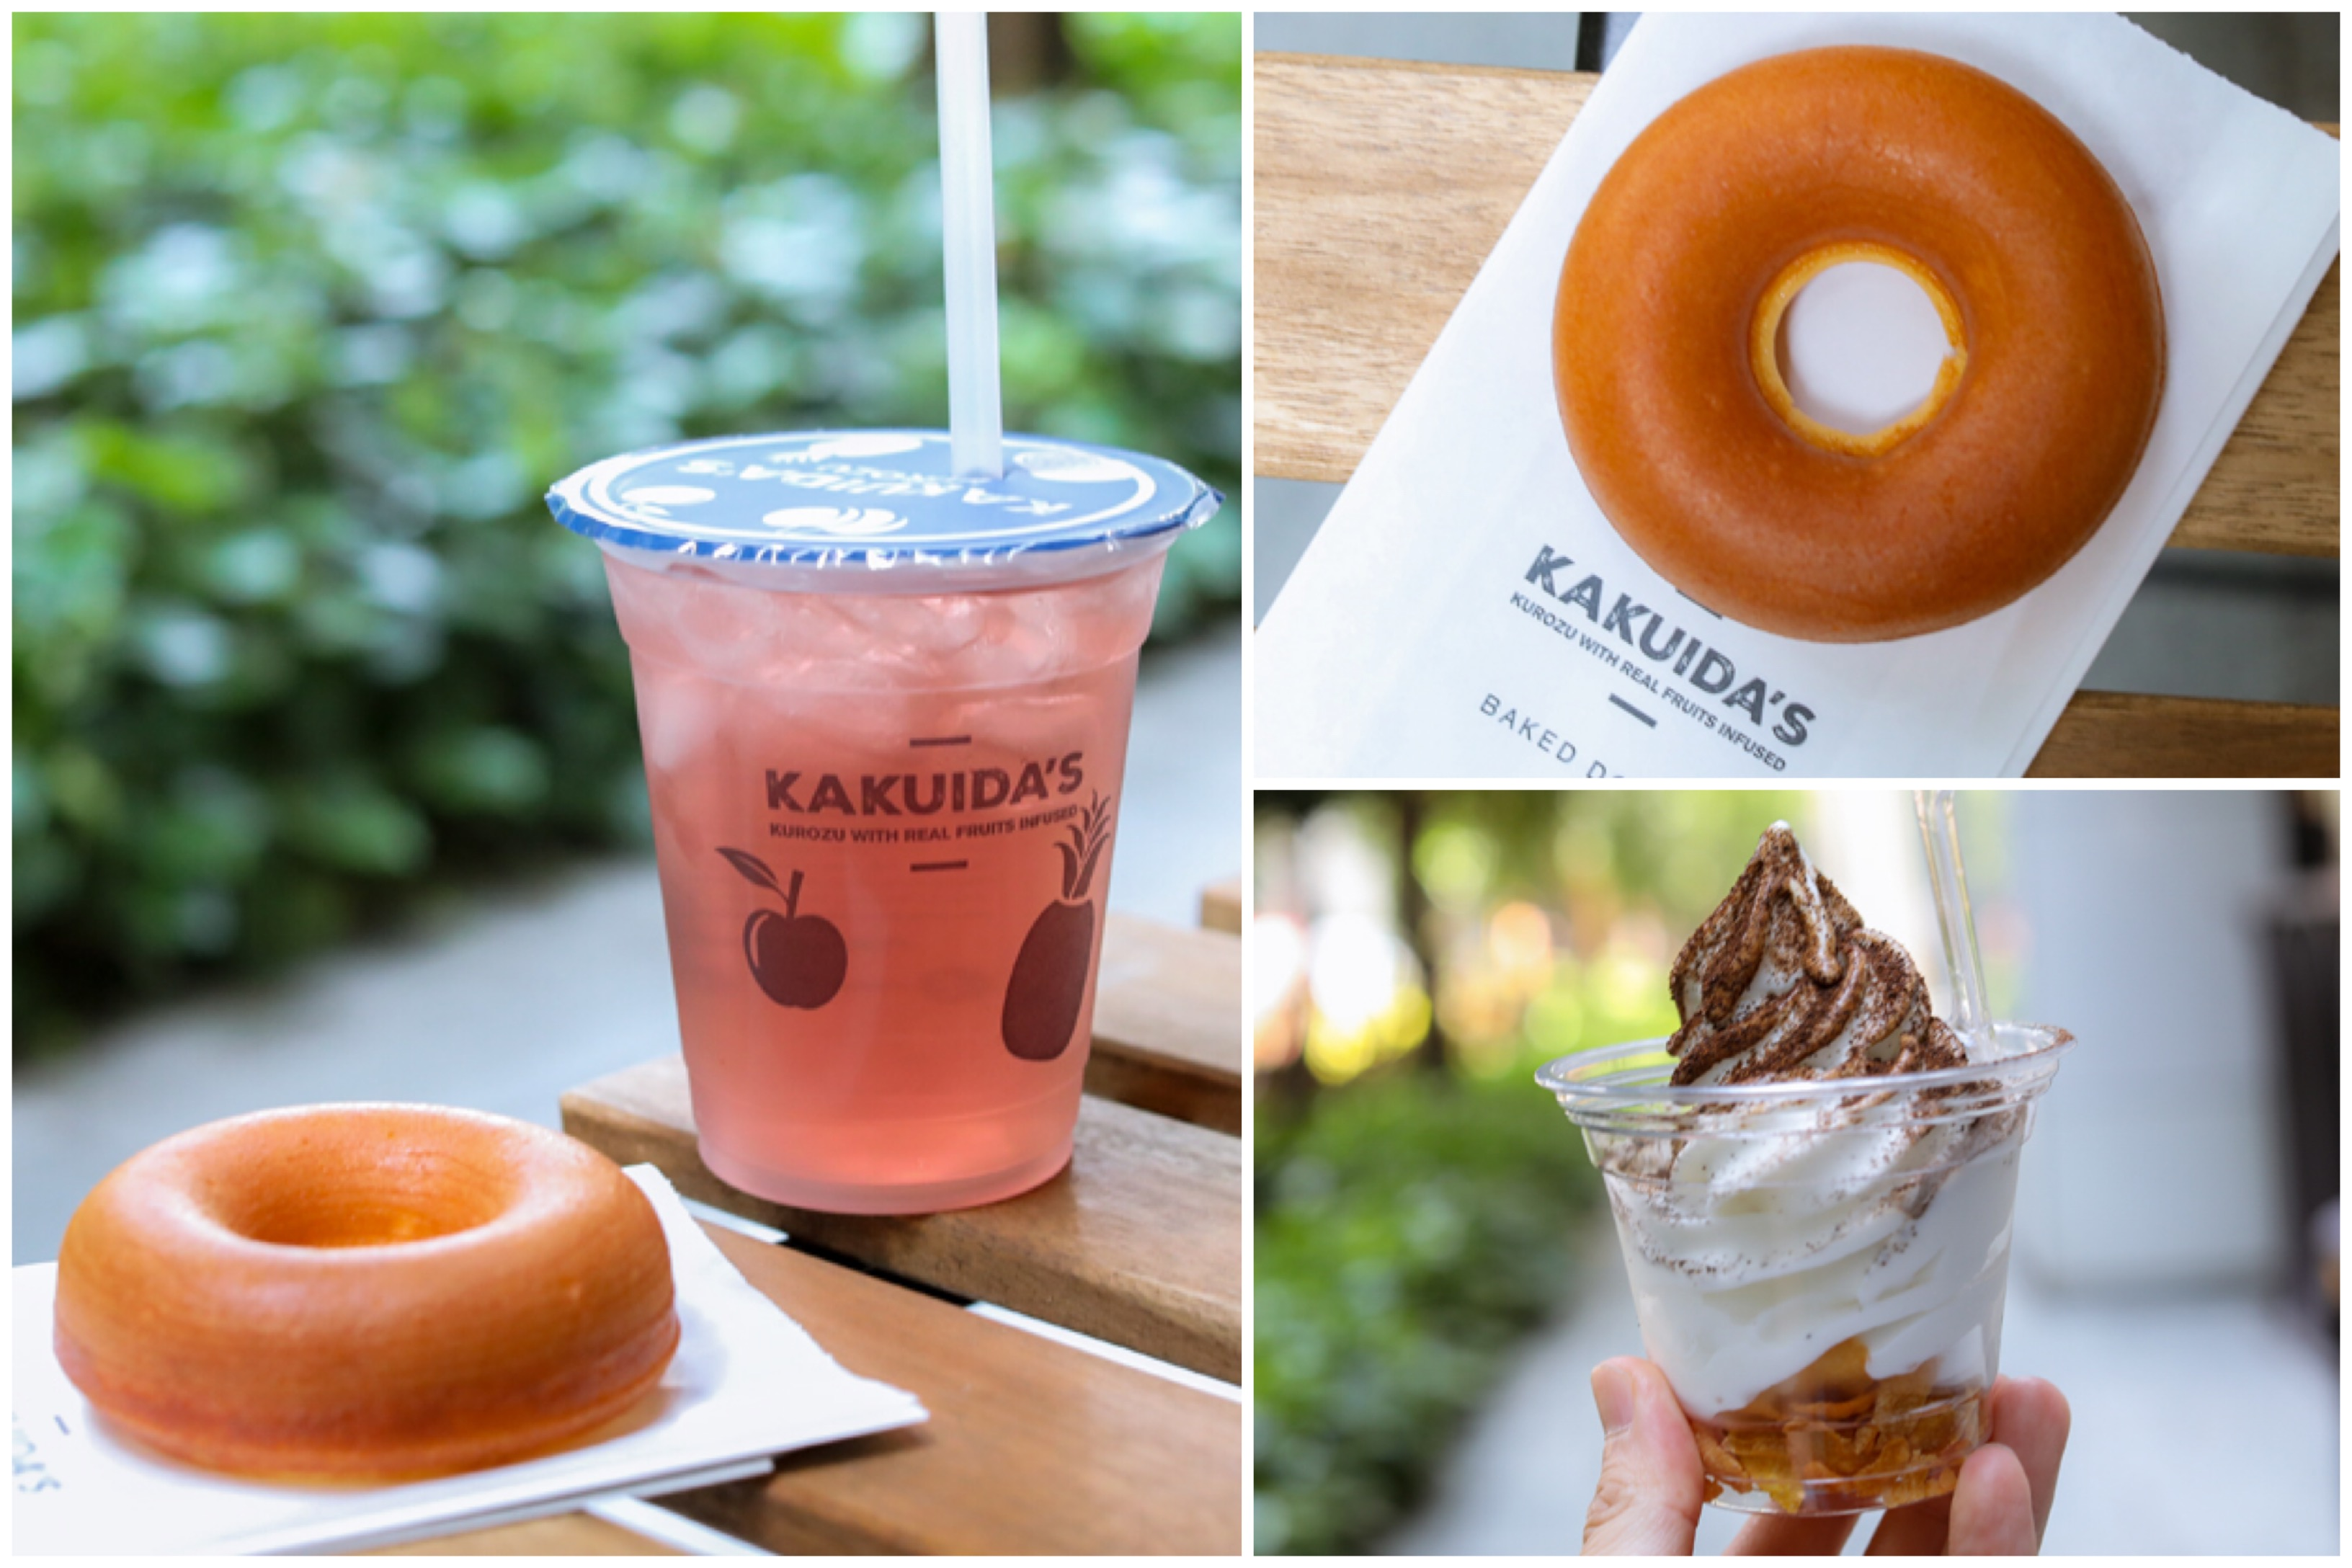 Kakuida's Kurozu - Japanese Vinegar Drink & Donut Shop Opens In Singapore, At Icon Village